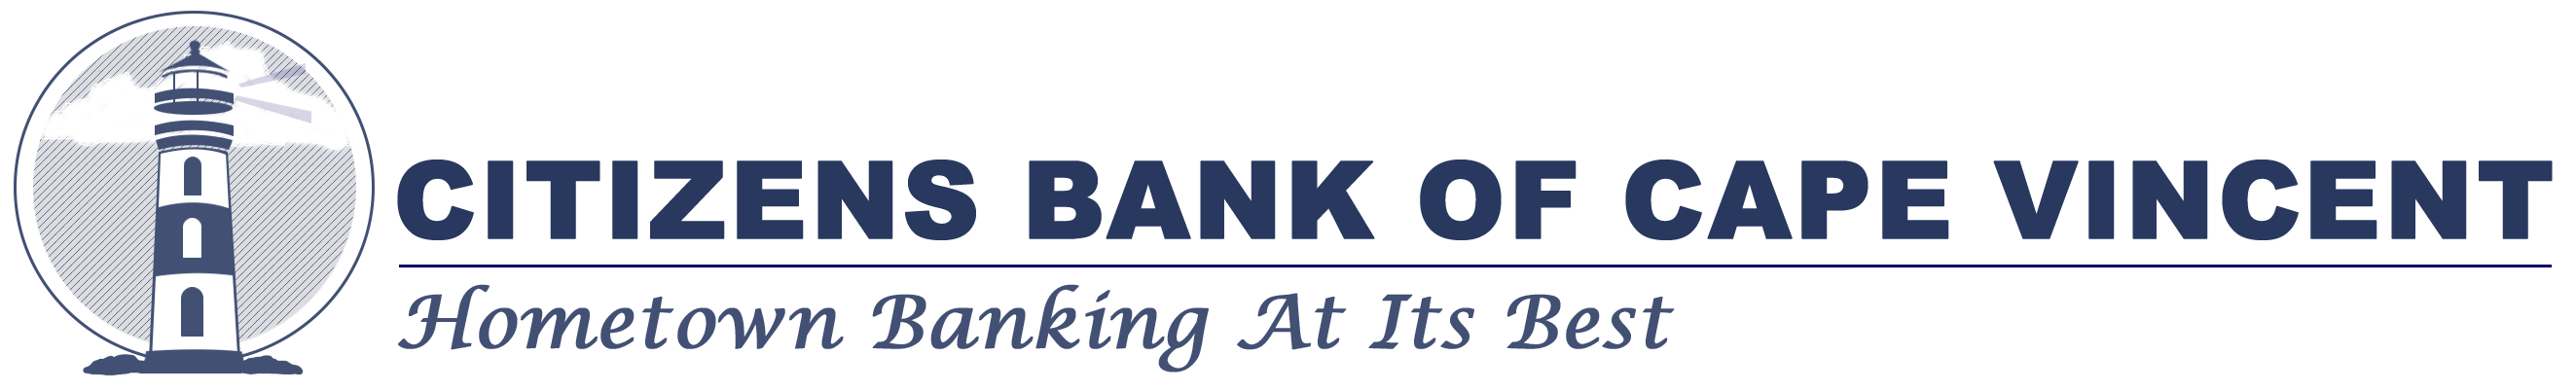 Free Checking Accounts, Online Banking, Debit Cards